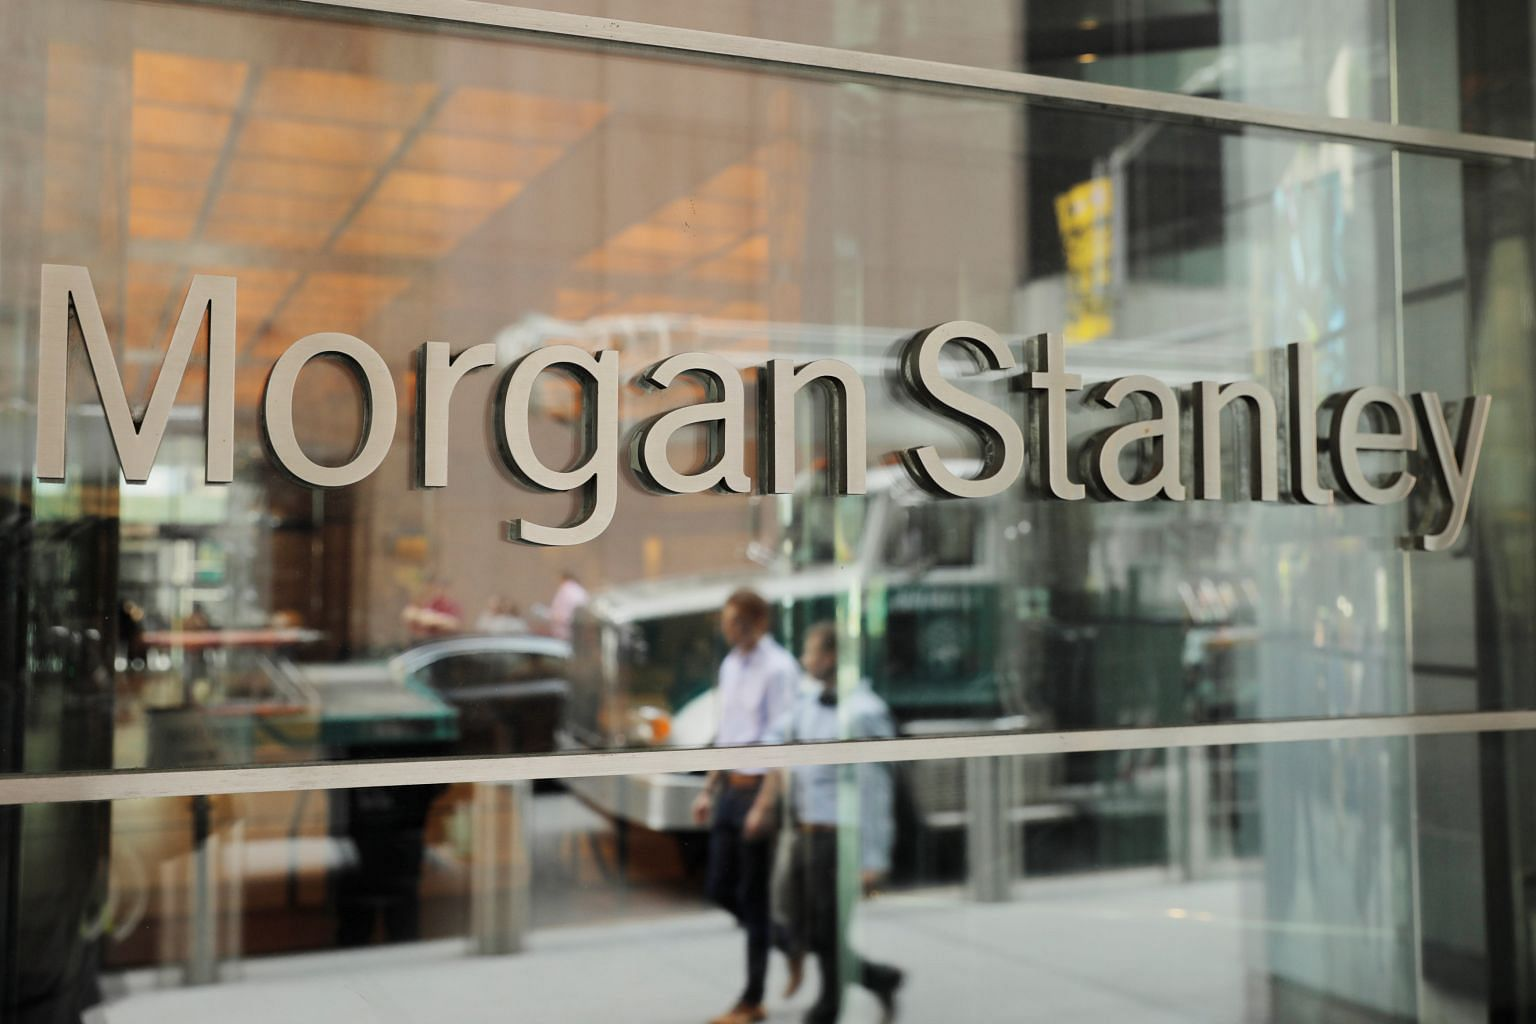 From Morgan Stanley intern to COO for South-east Asia investment